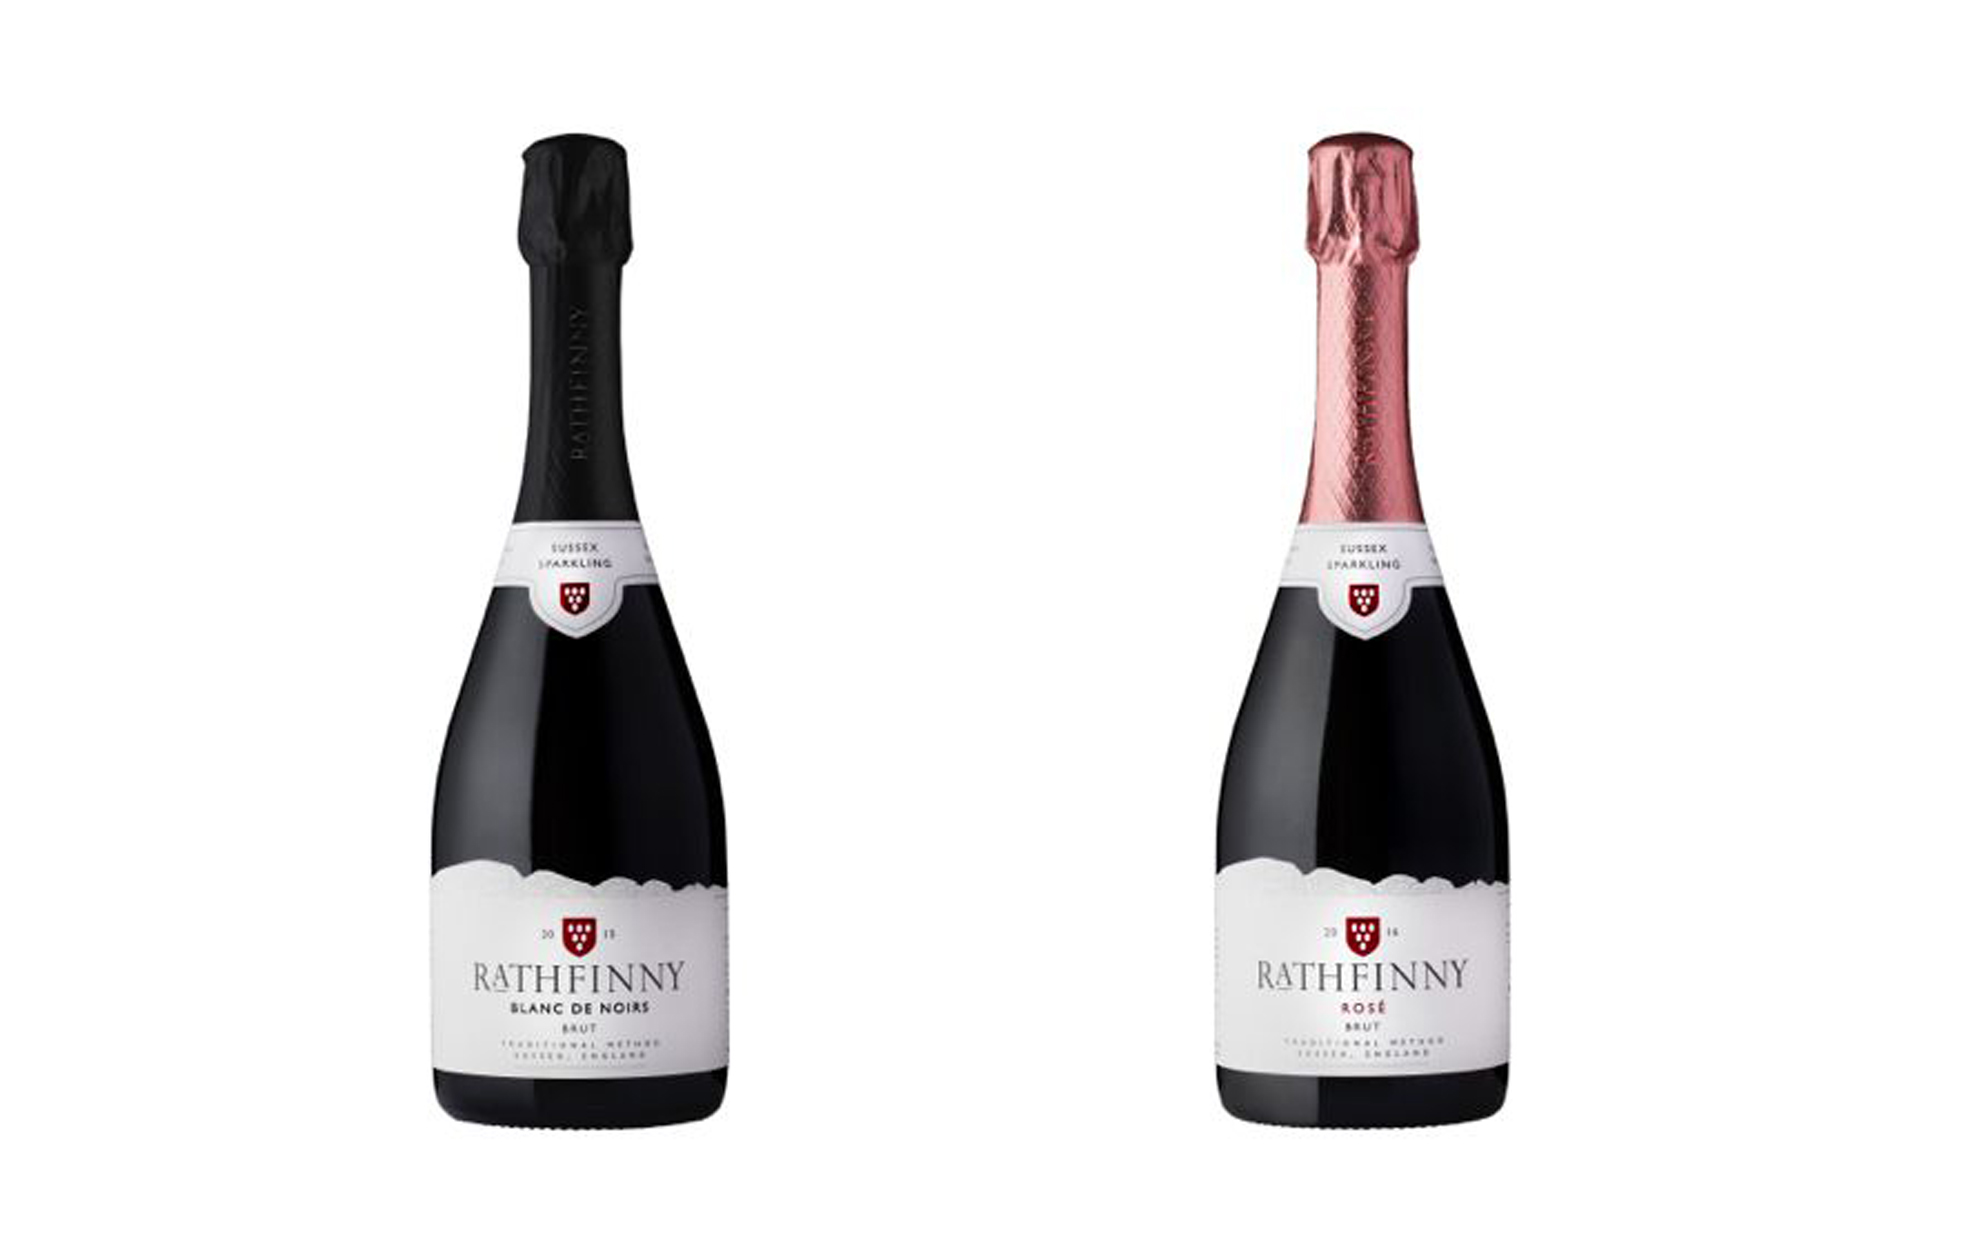 Rathfinny Blanc de Noirs 2015 and Rose 2016